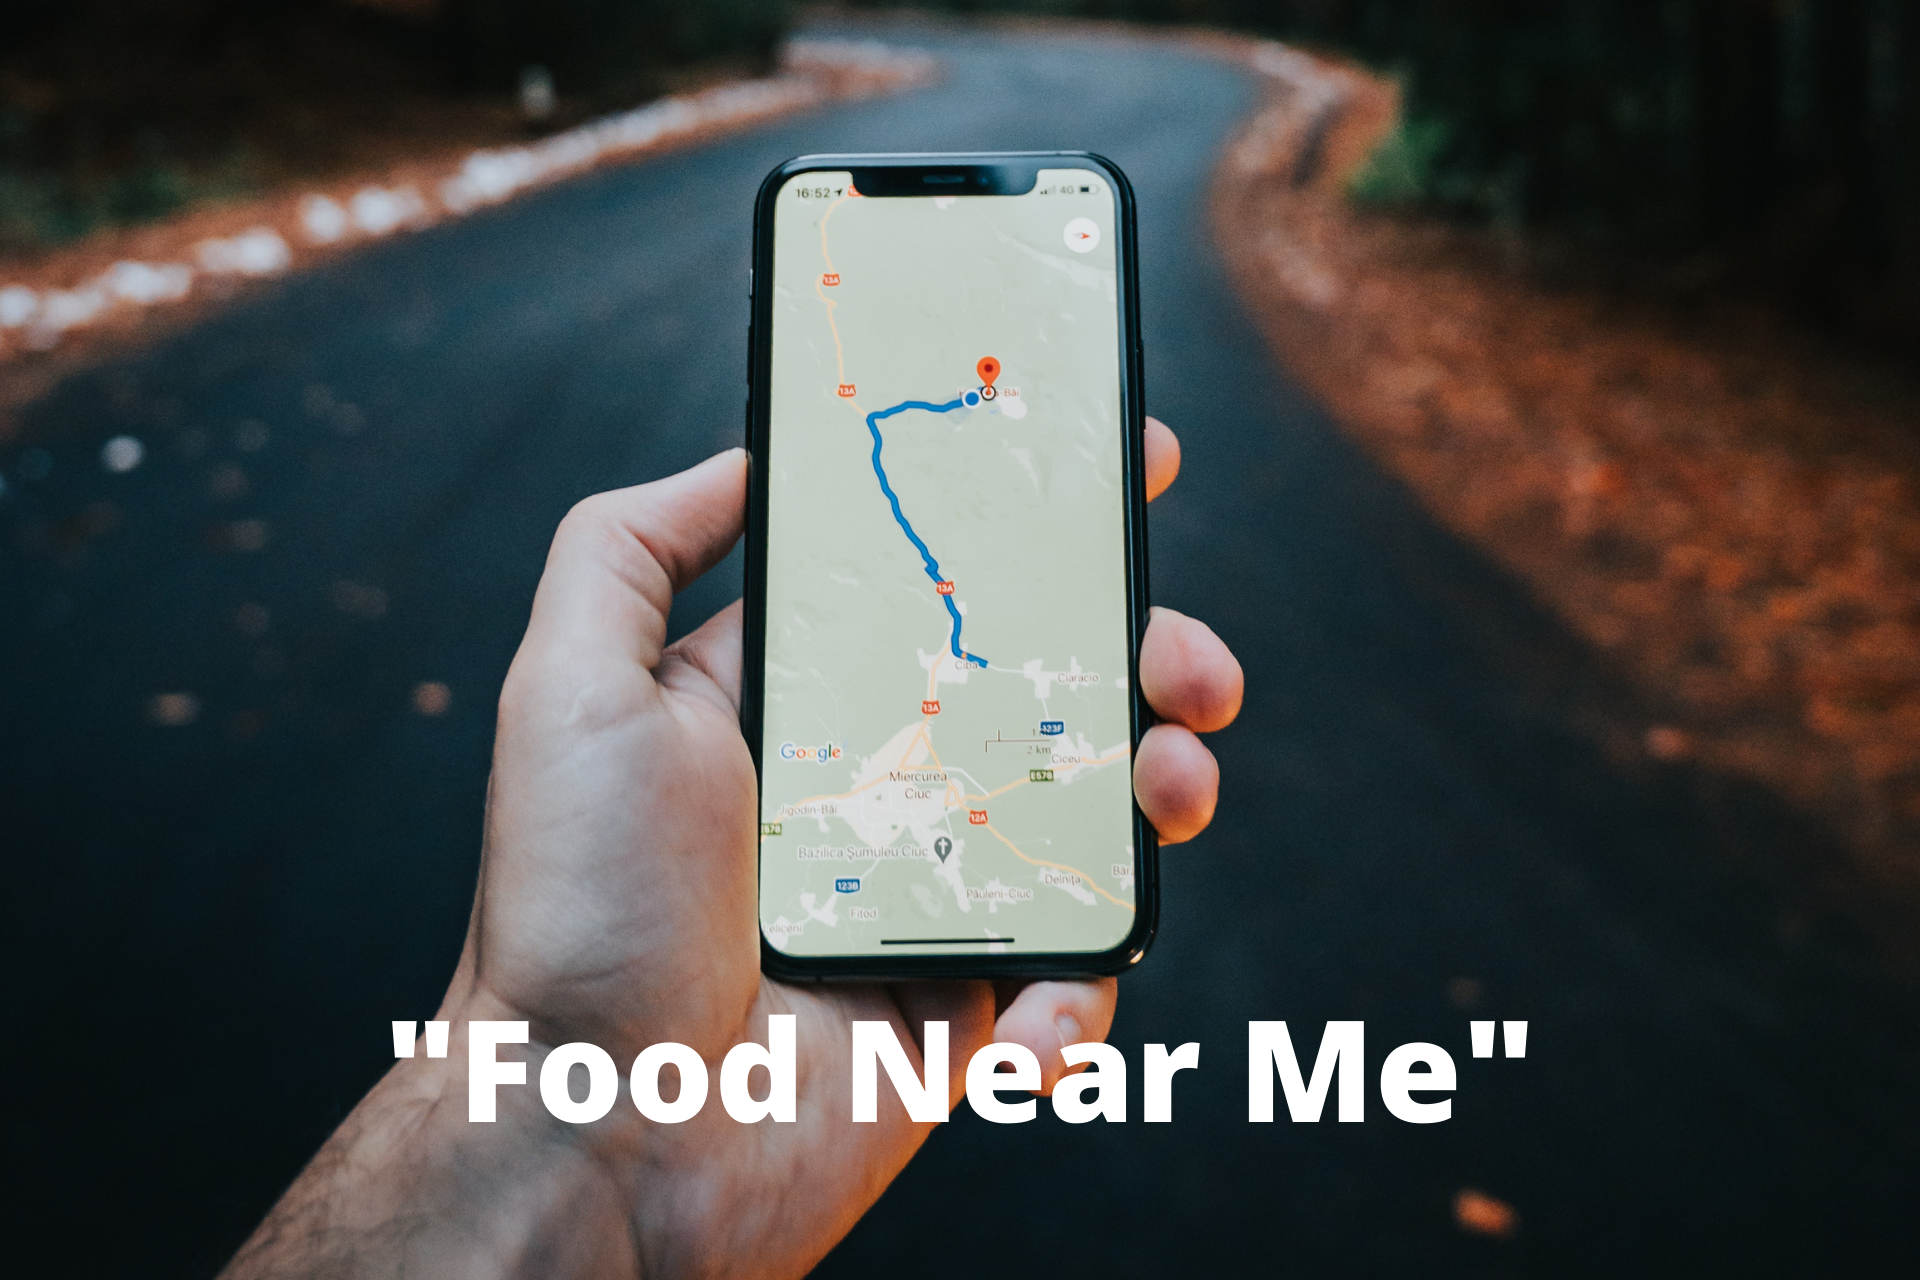 map showing food near me